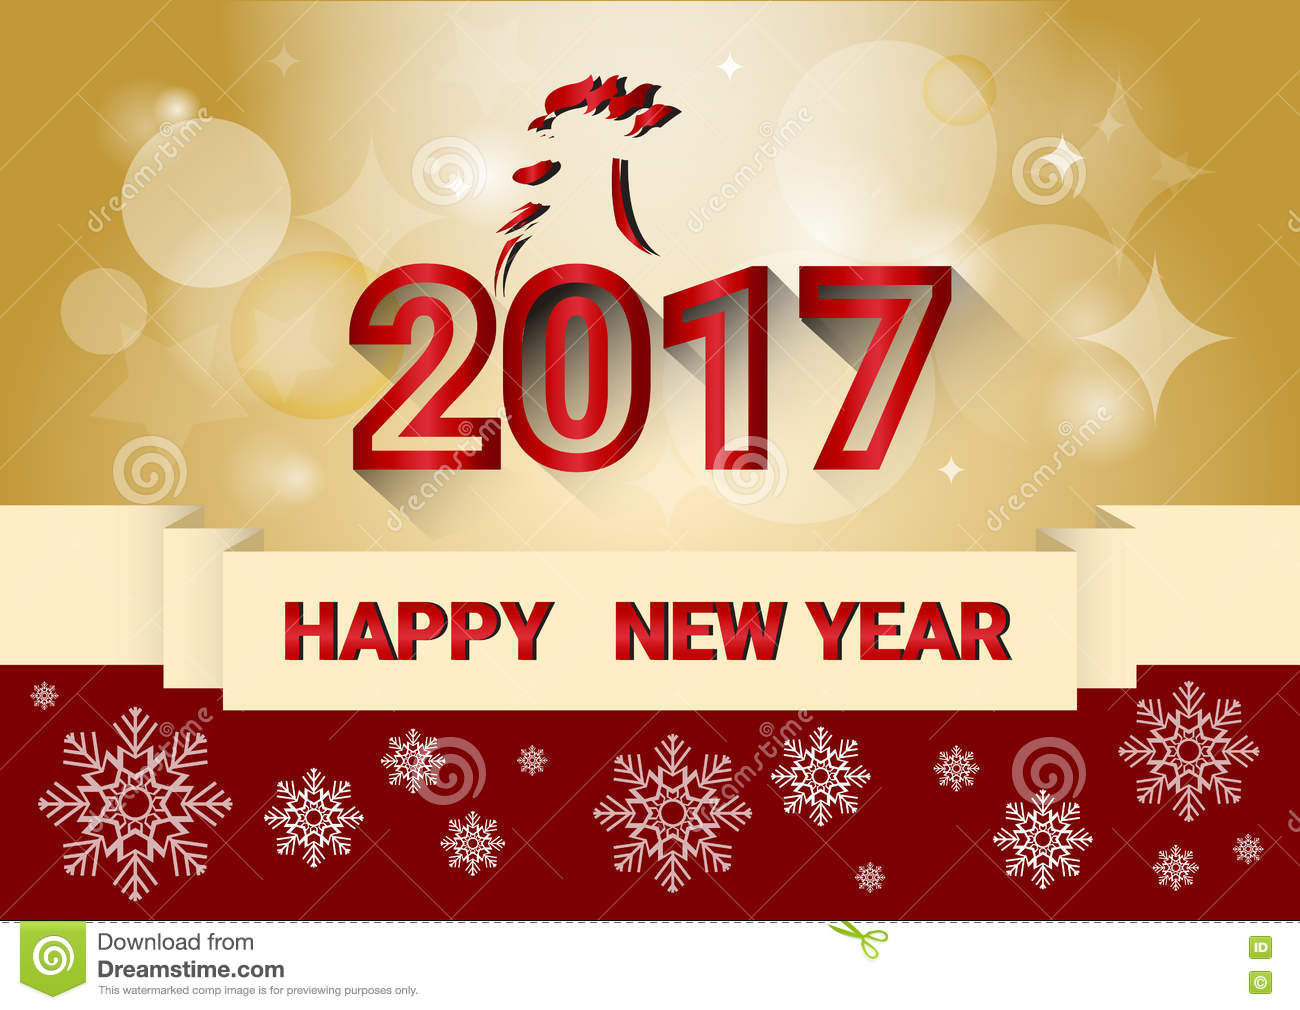 happy new 2017 year web banner